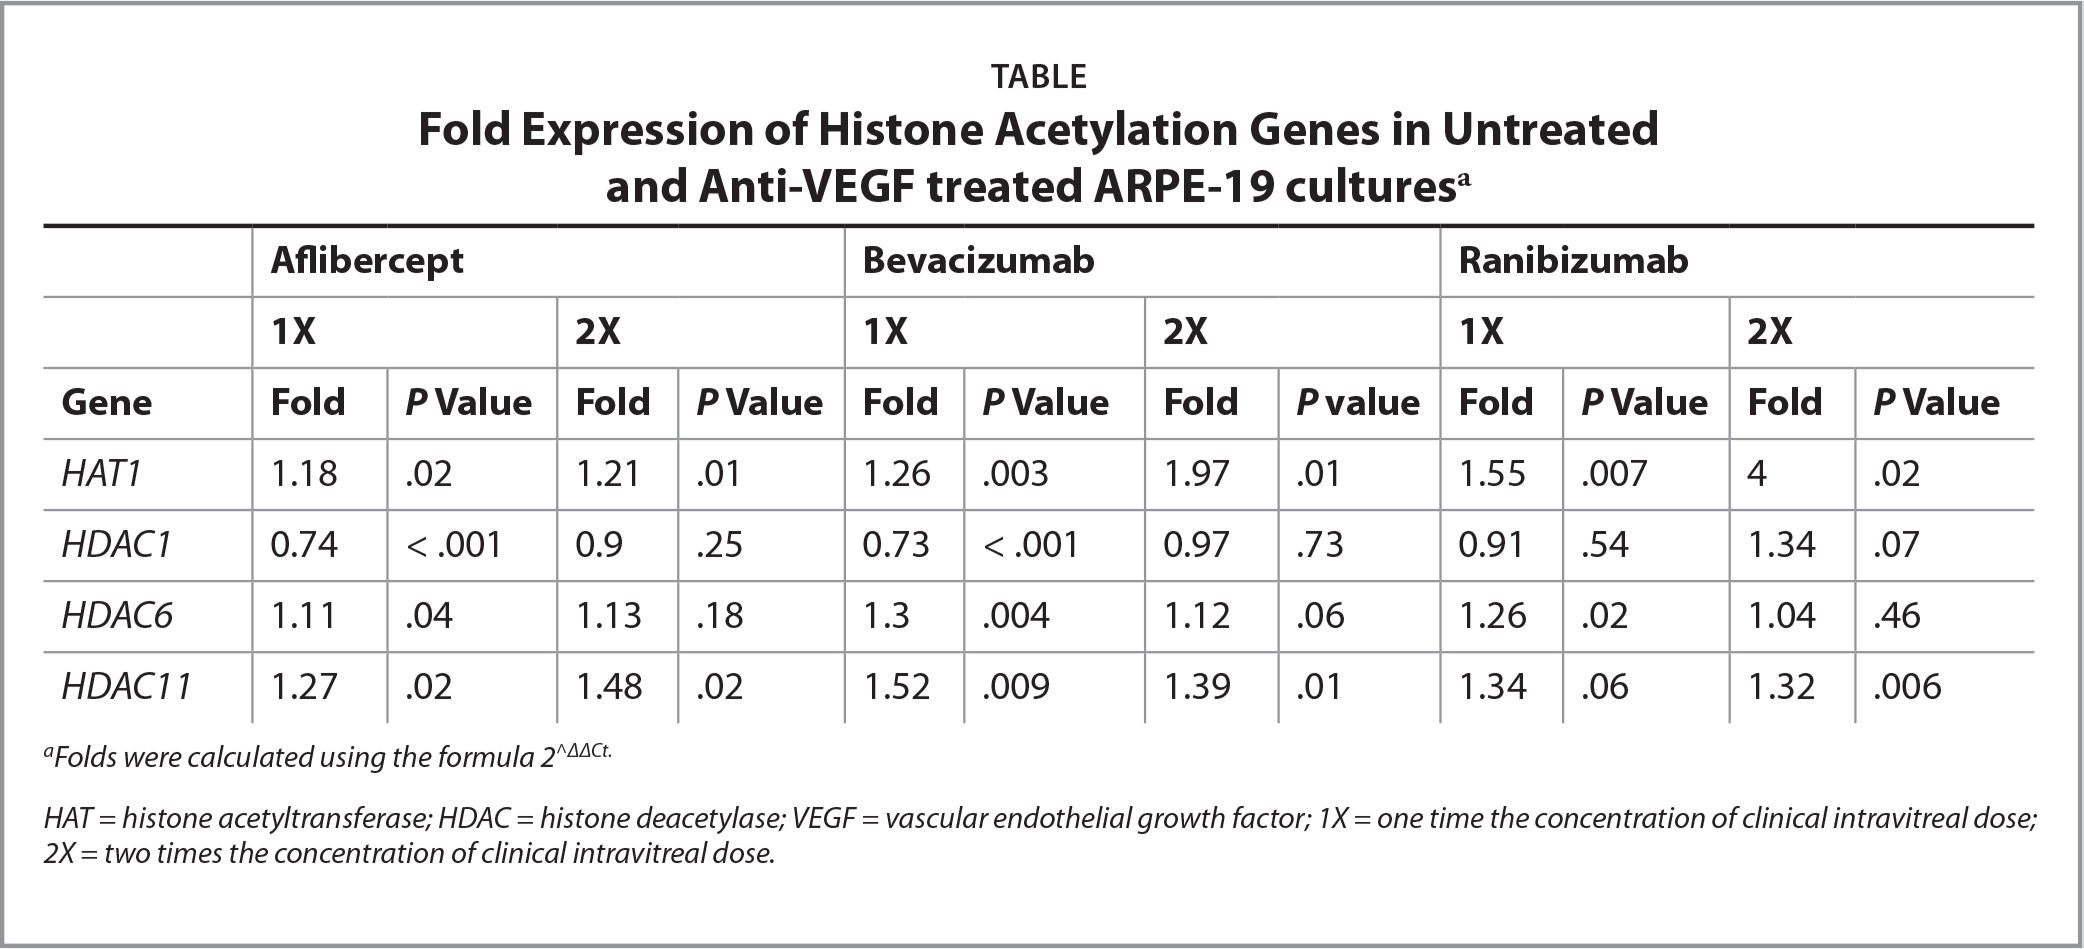 Fold Expression of Histone Acetylation Genes in Untreated and Anti-VEGF treated ARPE-19 culturesa